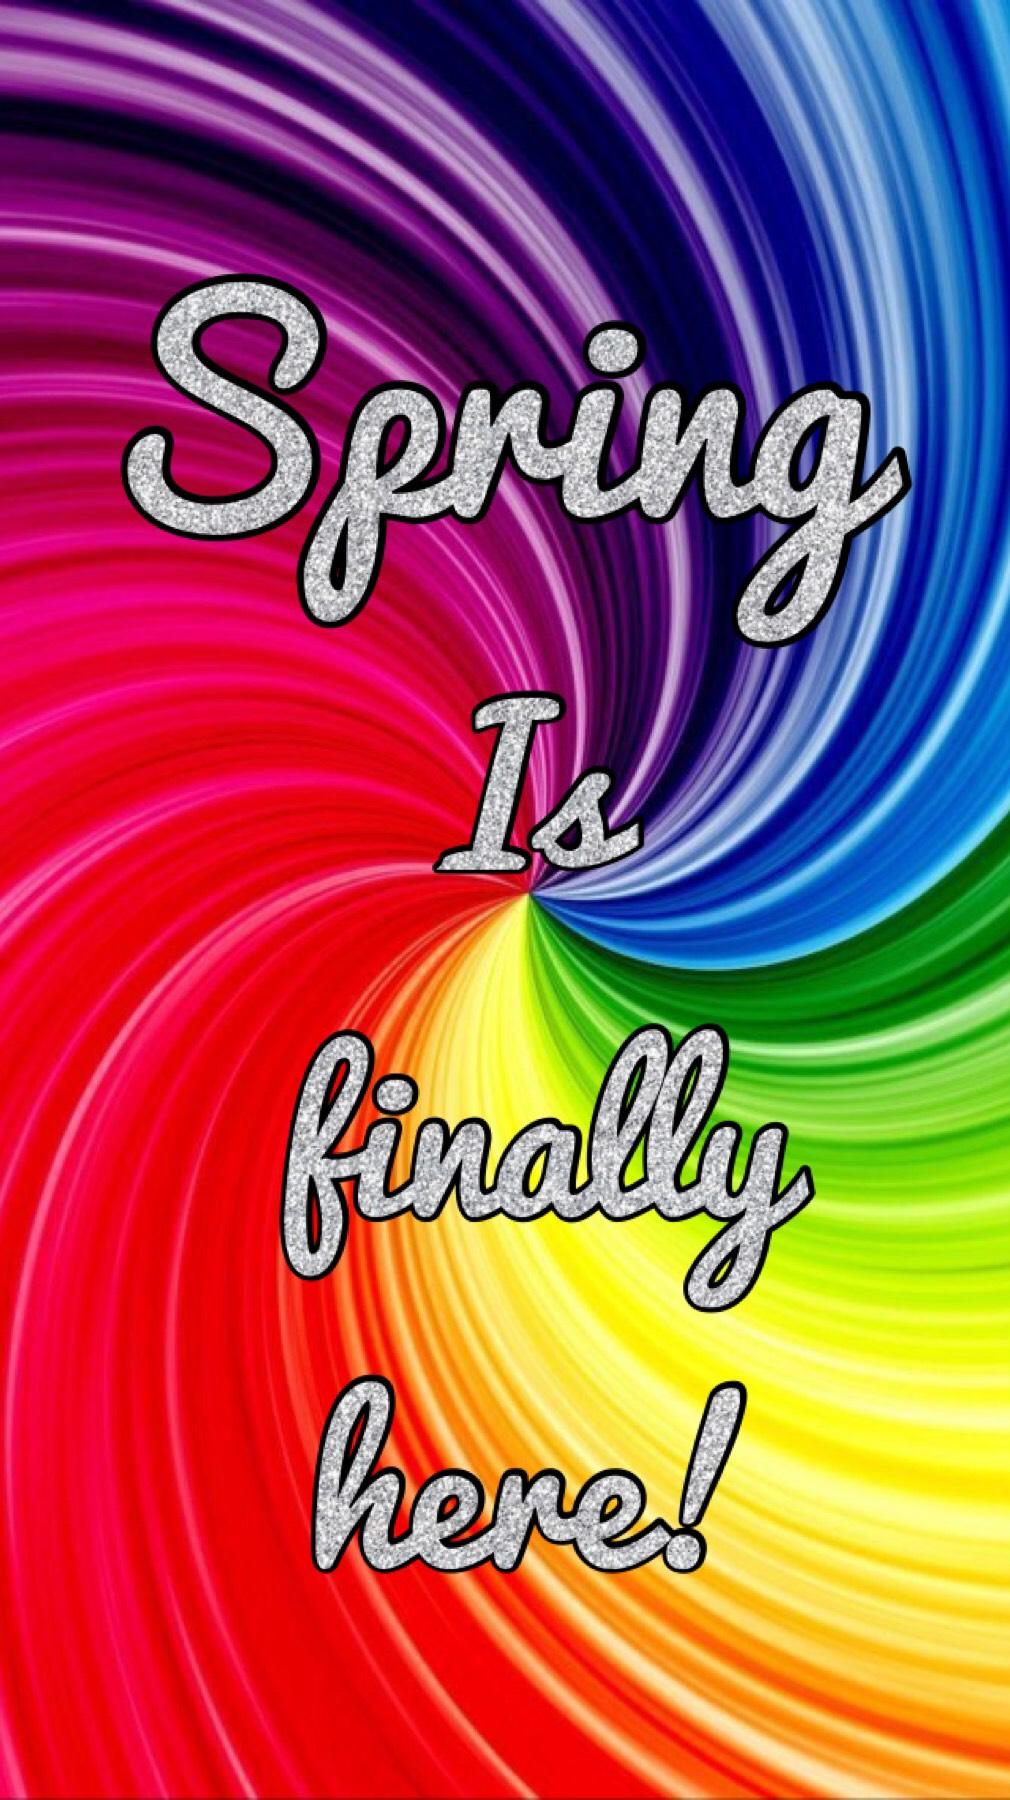 In NY we've had the longest Winter ever, and it's finally Spring!